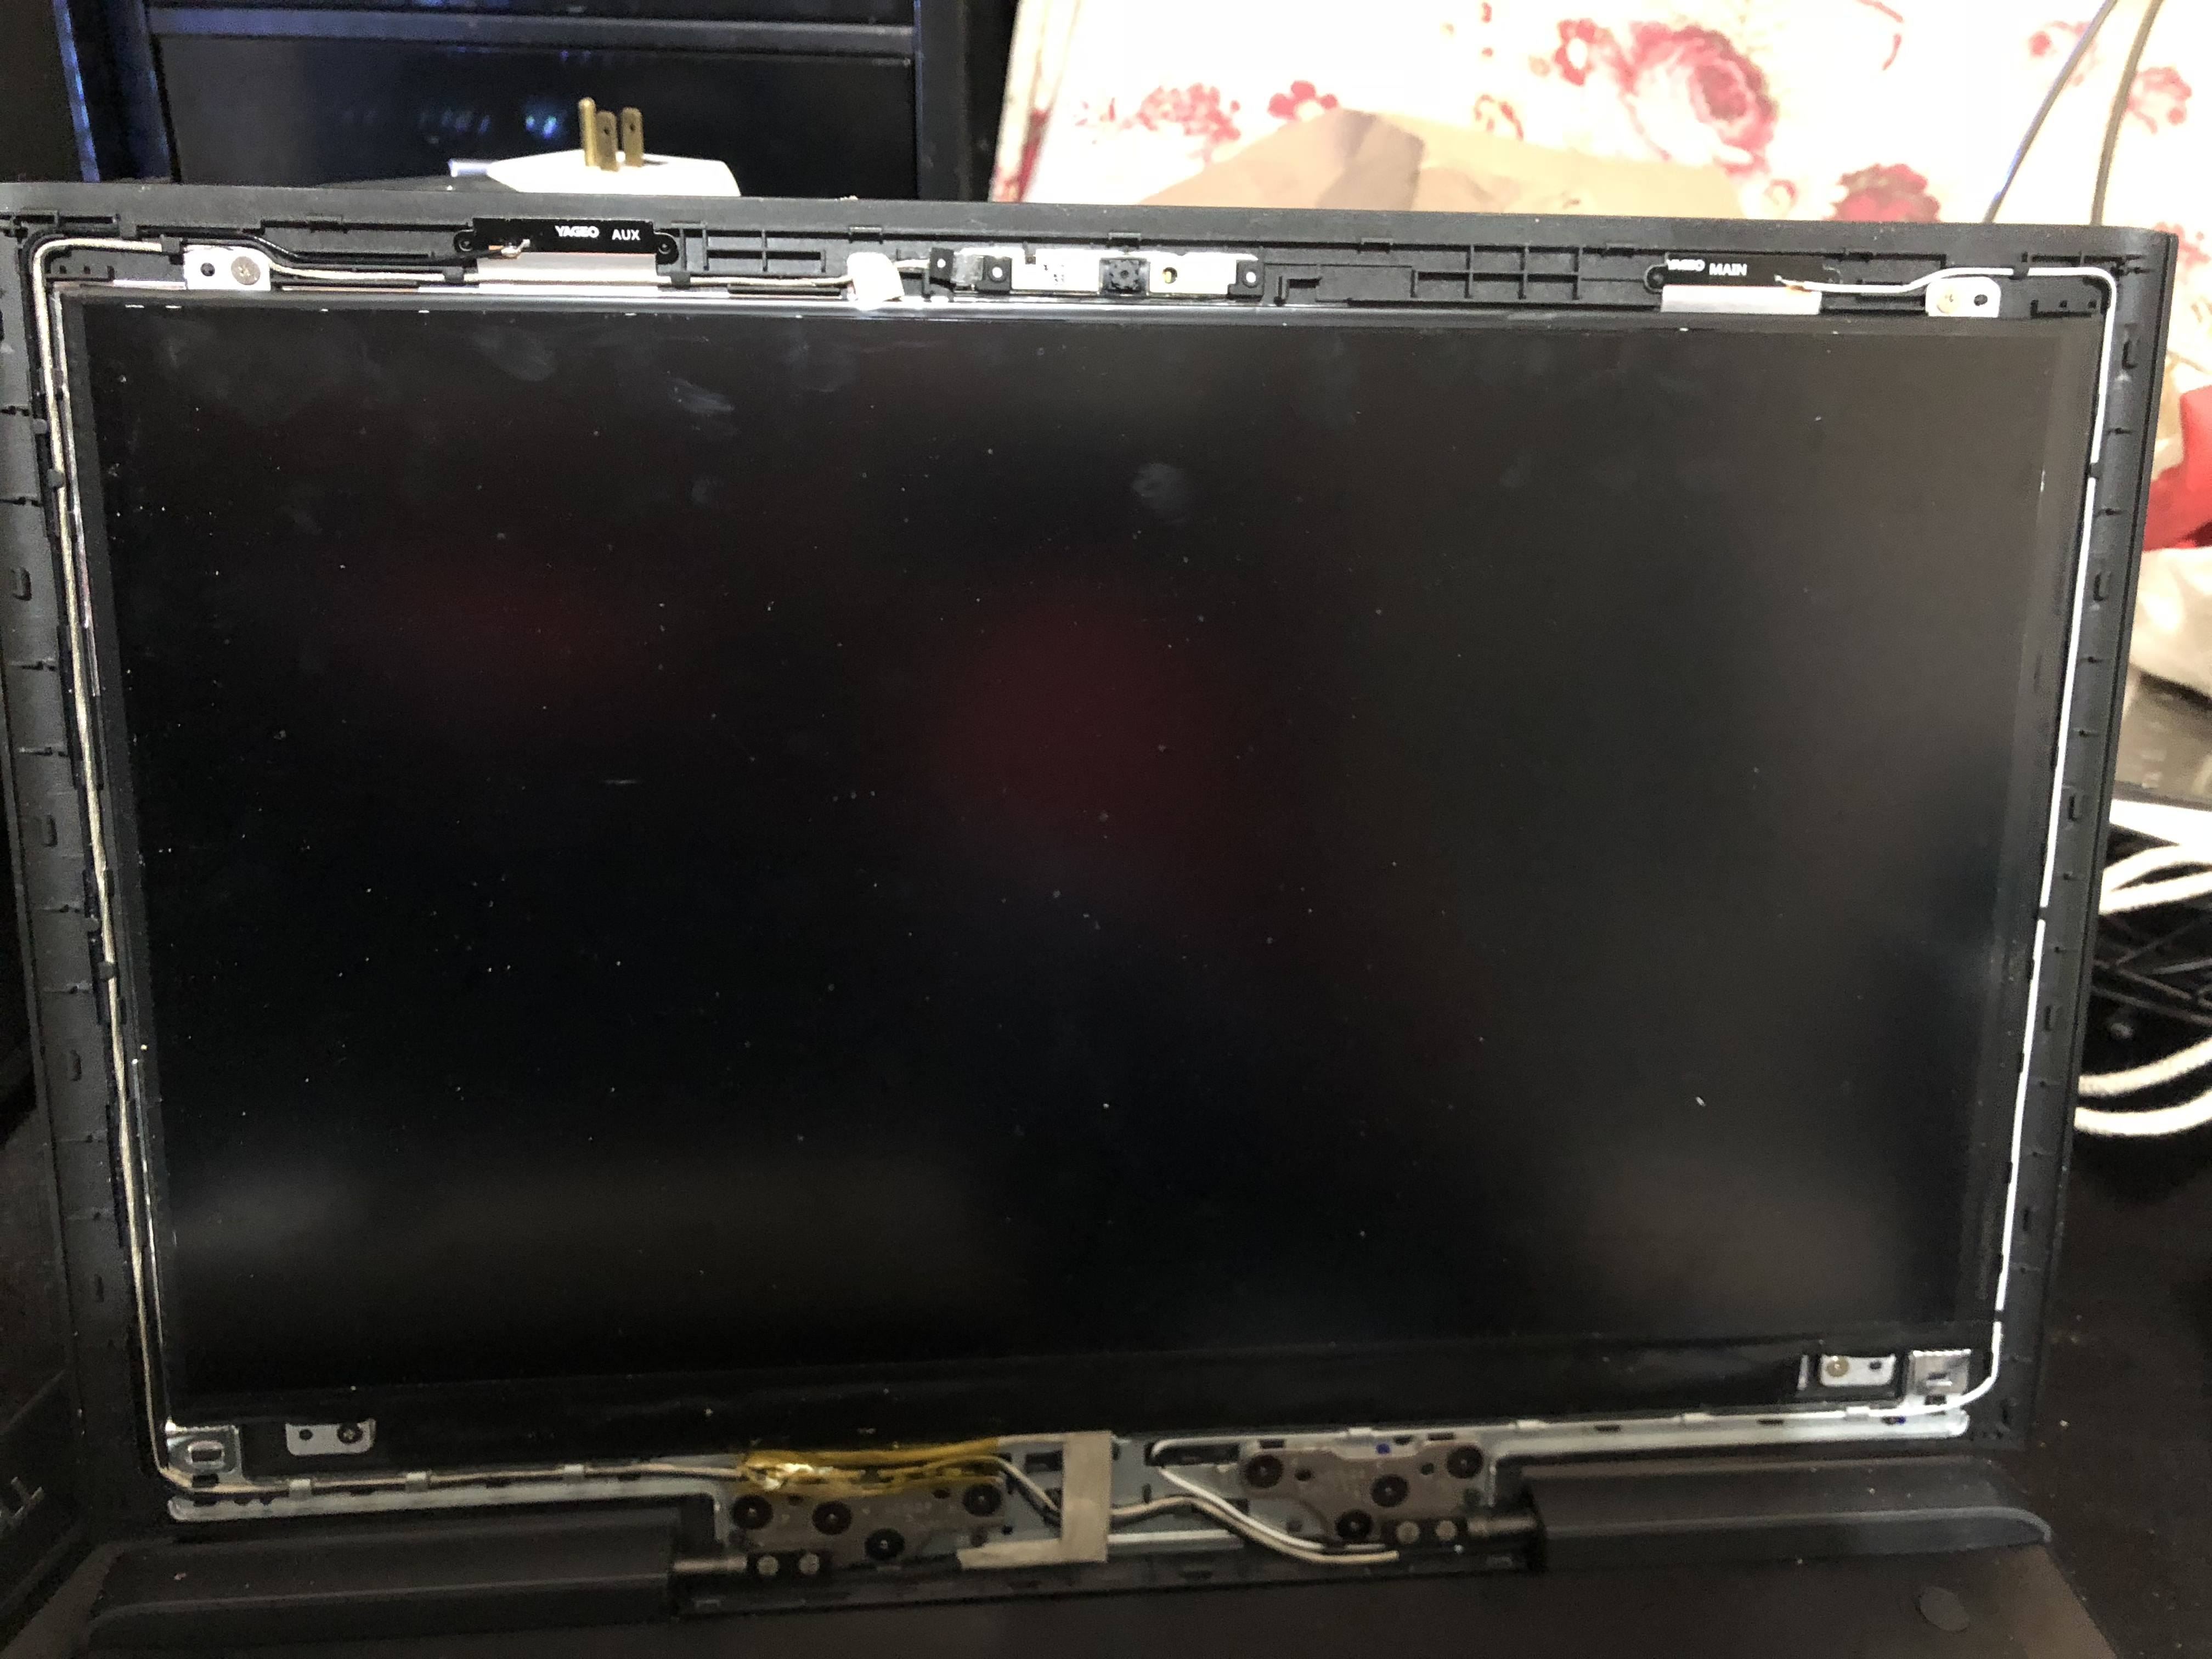 Dell Inspiron 15 7577 120Hz Display Mod - Case Modding and Other